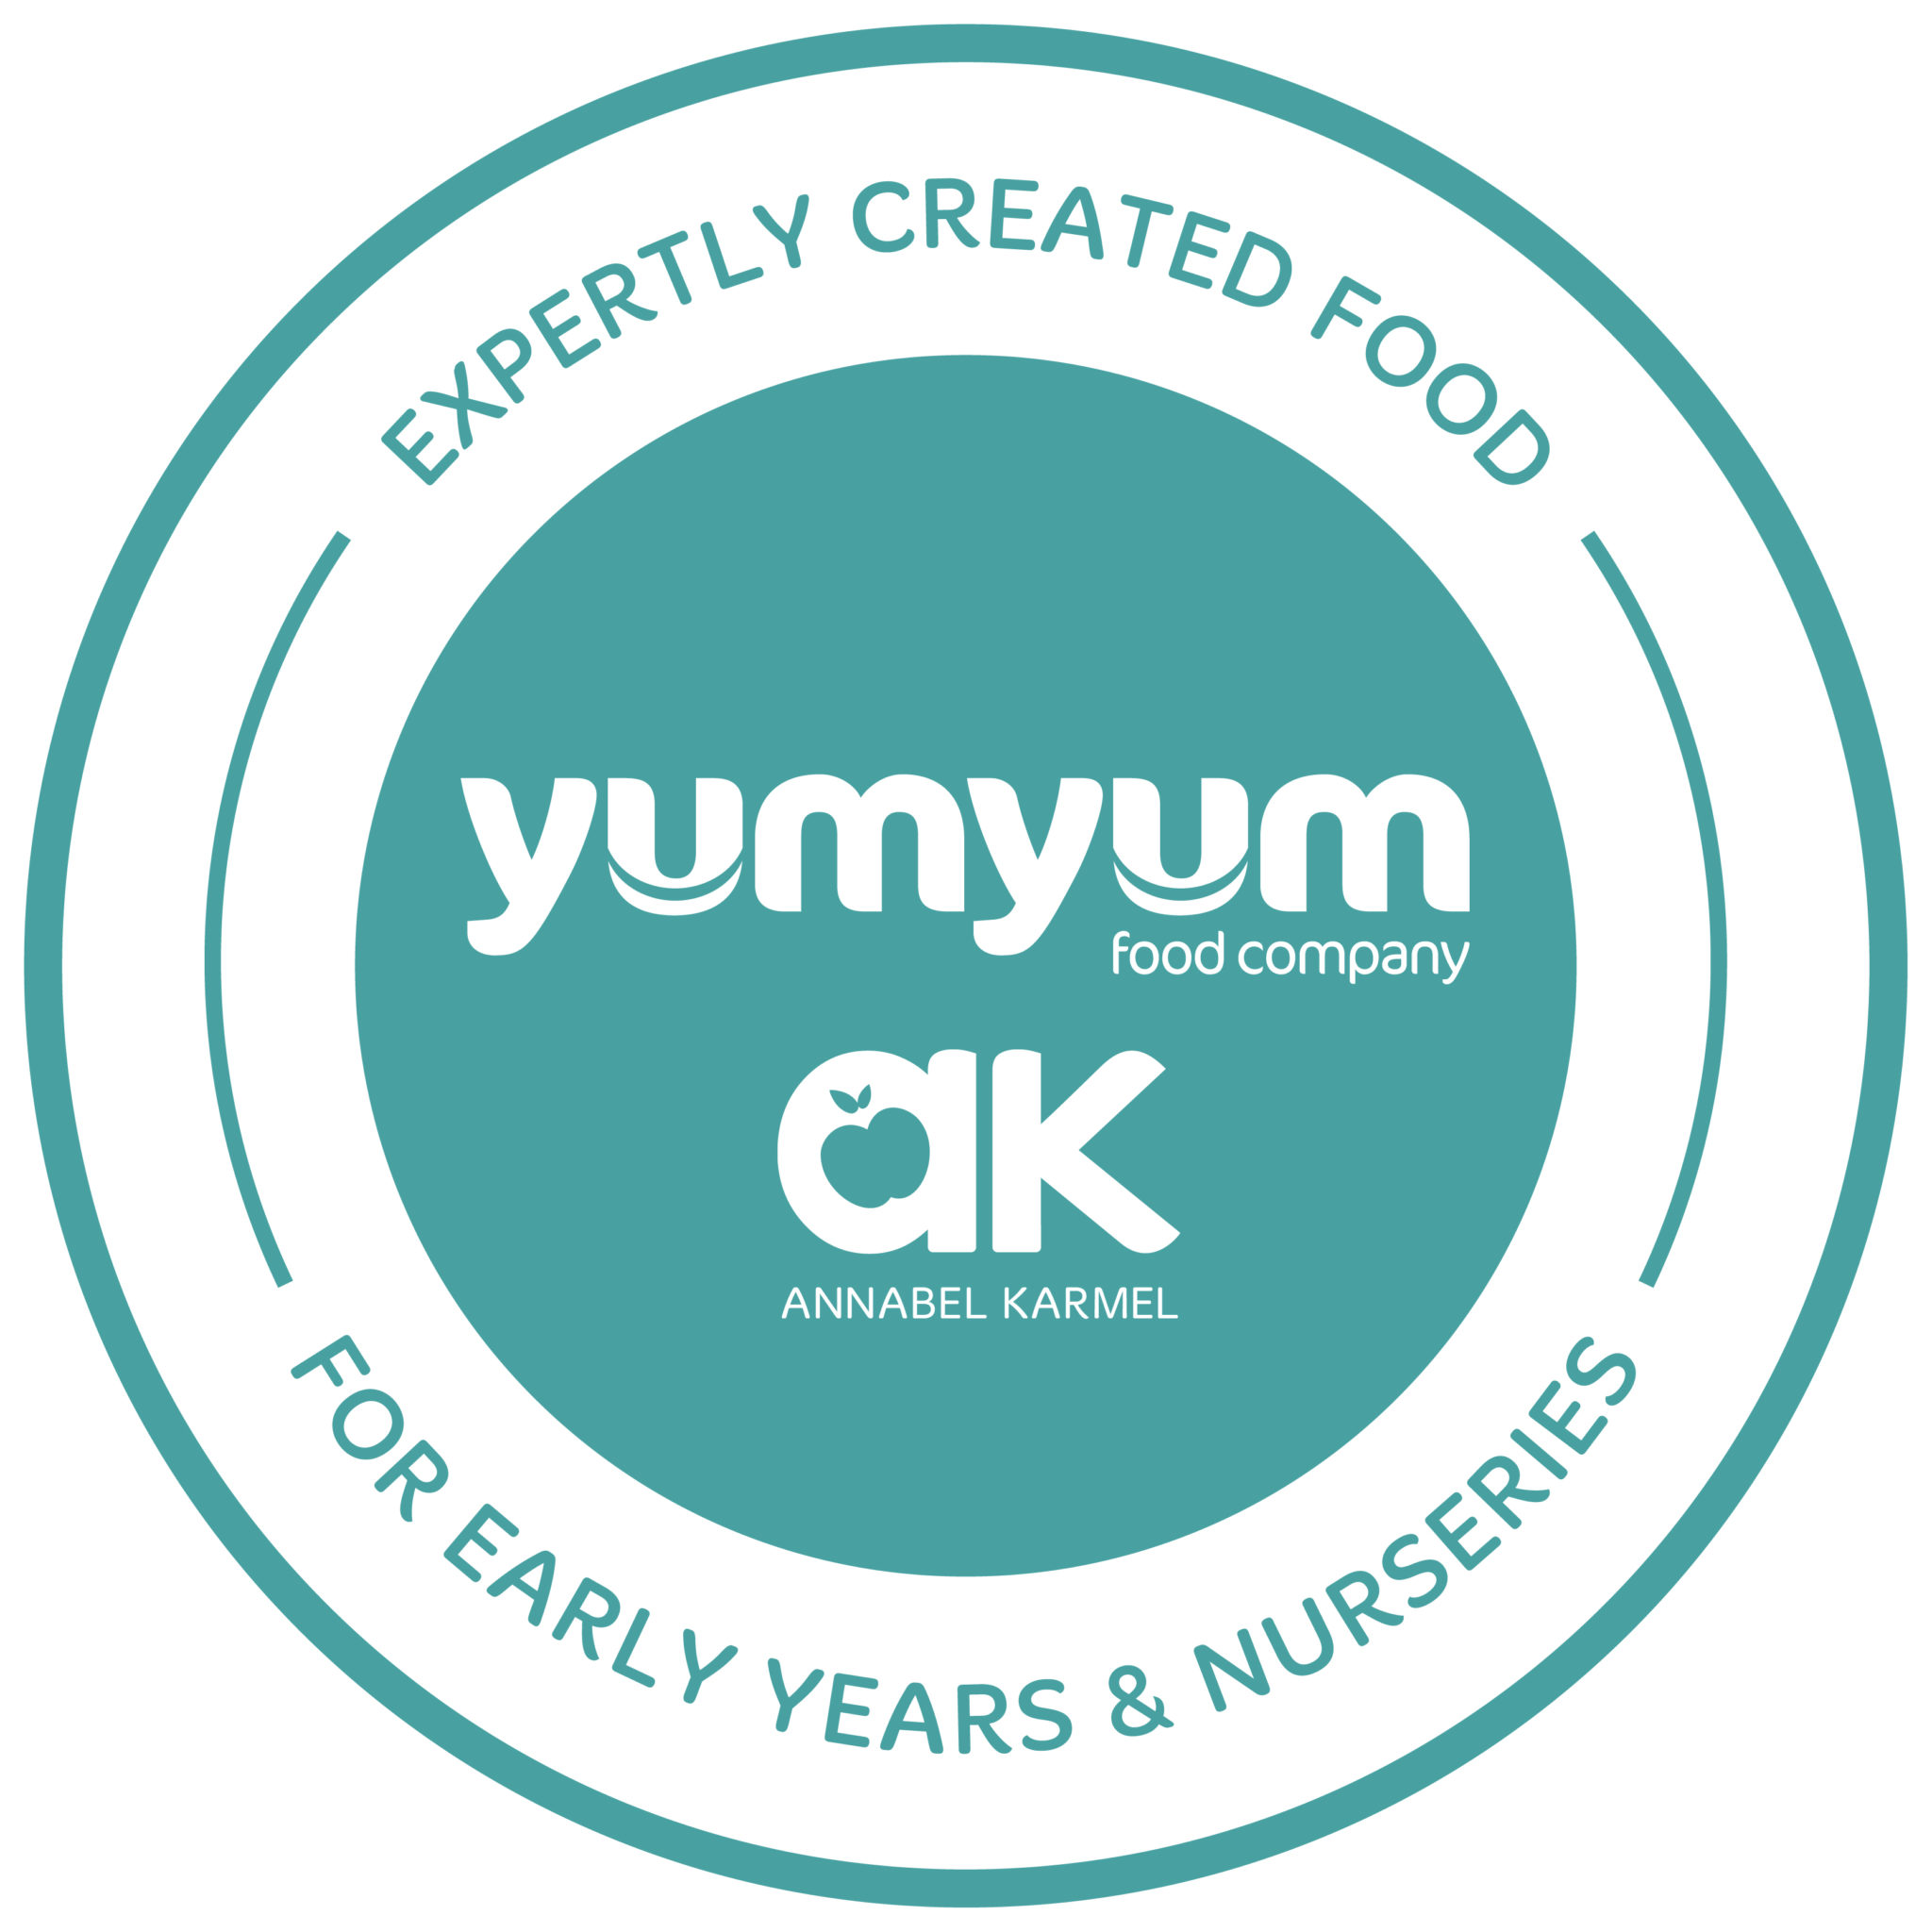 The Yum Yum Food Company Limited